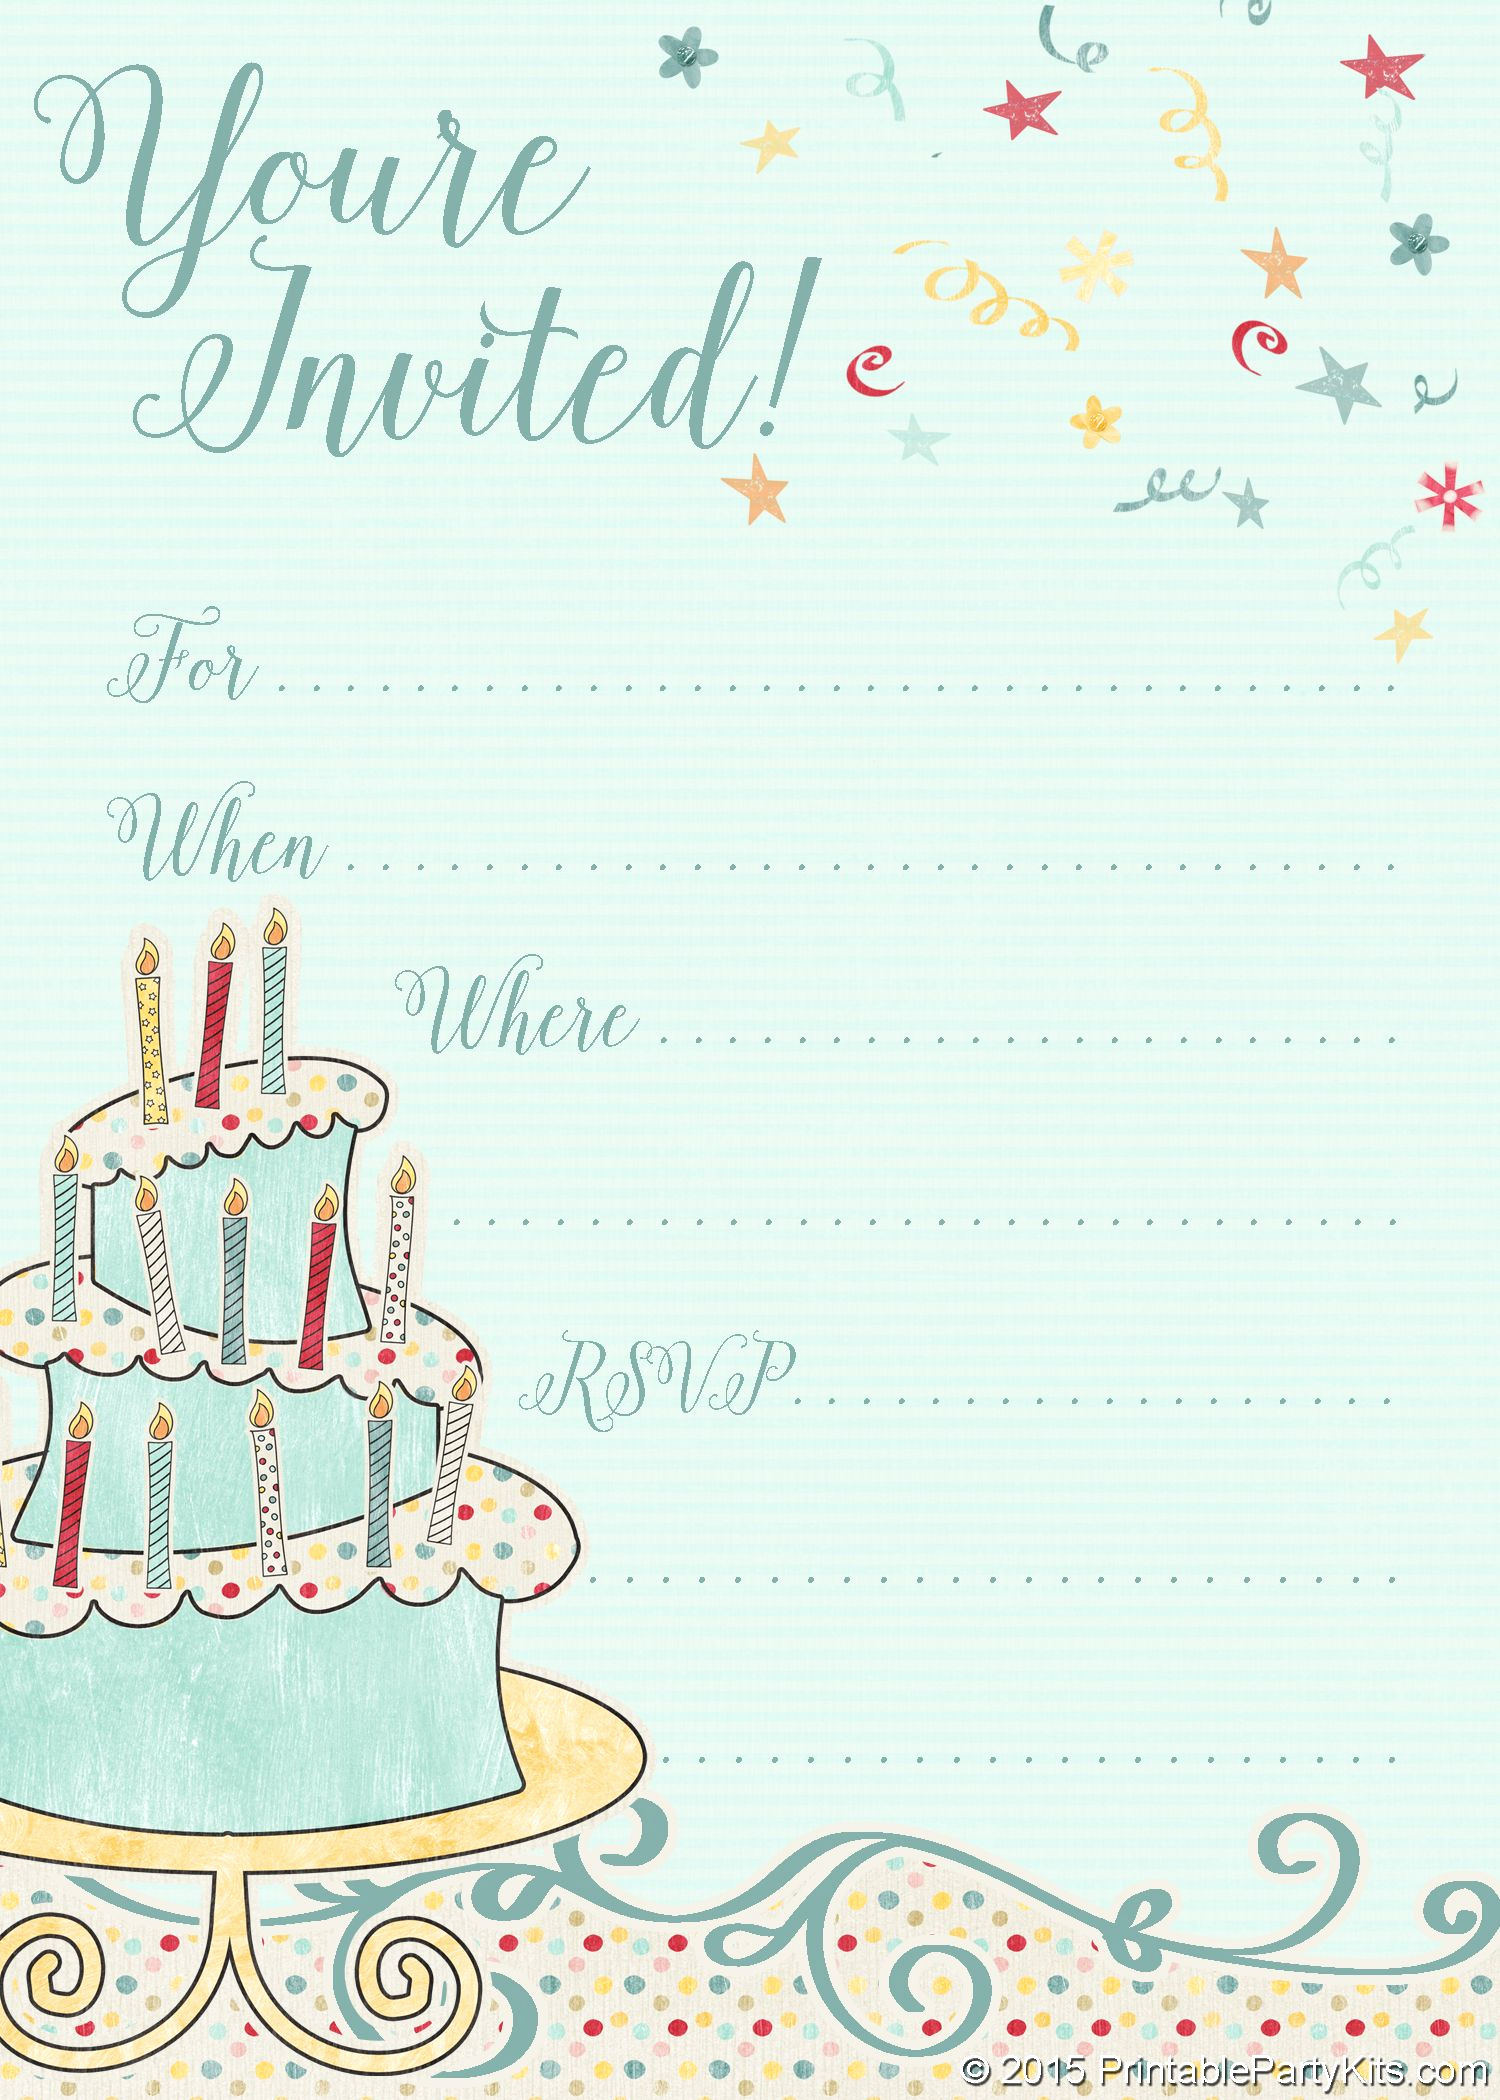 Birthday Party Invitation Templates Best Of Free Printable Whimsical Birthday Party Invitation